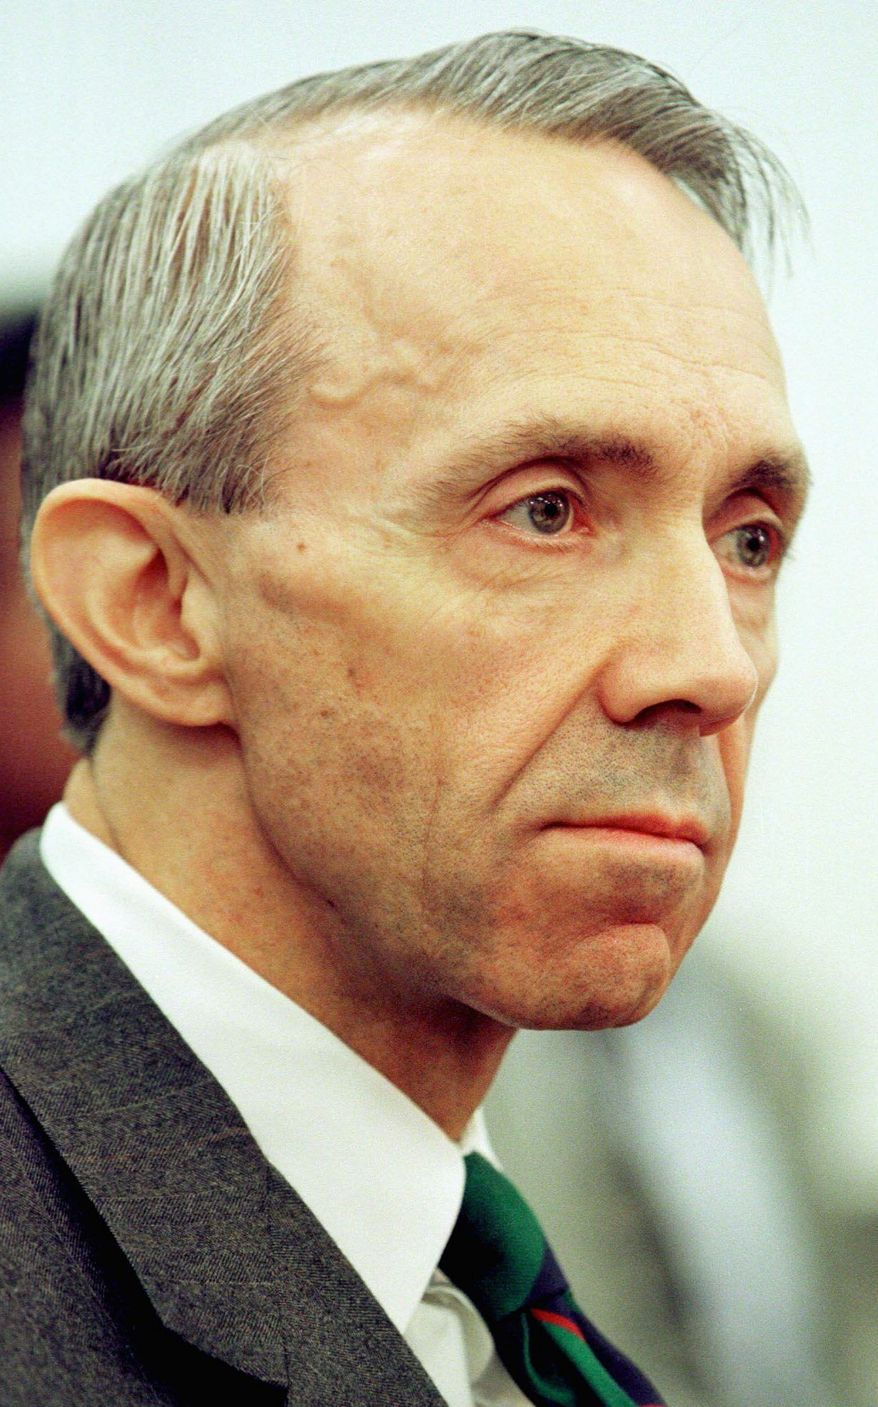 Getty images Supreme Court Justice David Souter